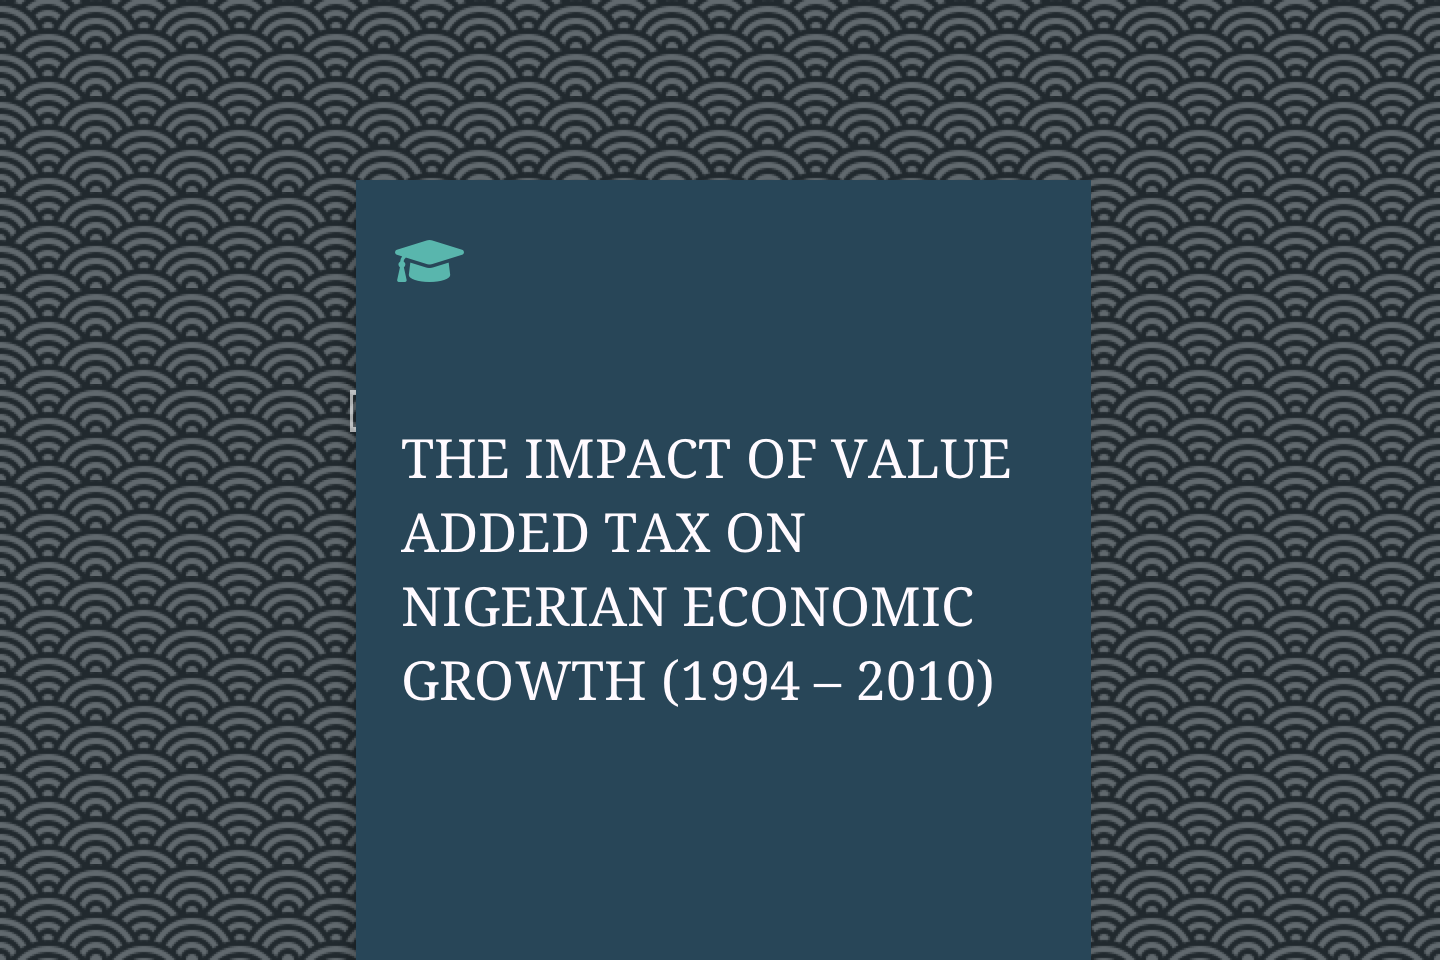 THE IMPACT OF VALUE ADDED TAX ON NIGERIAN ECONOMIC GROWTH (1994 – 2010)